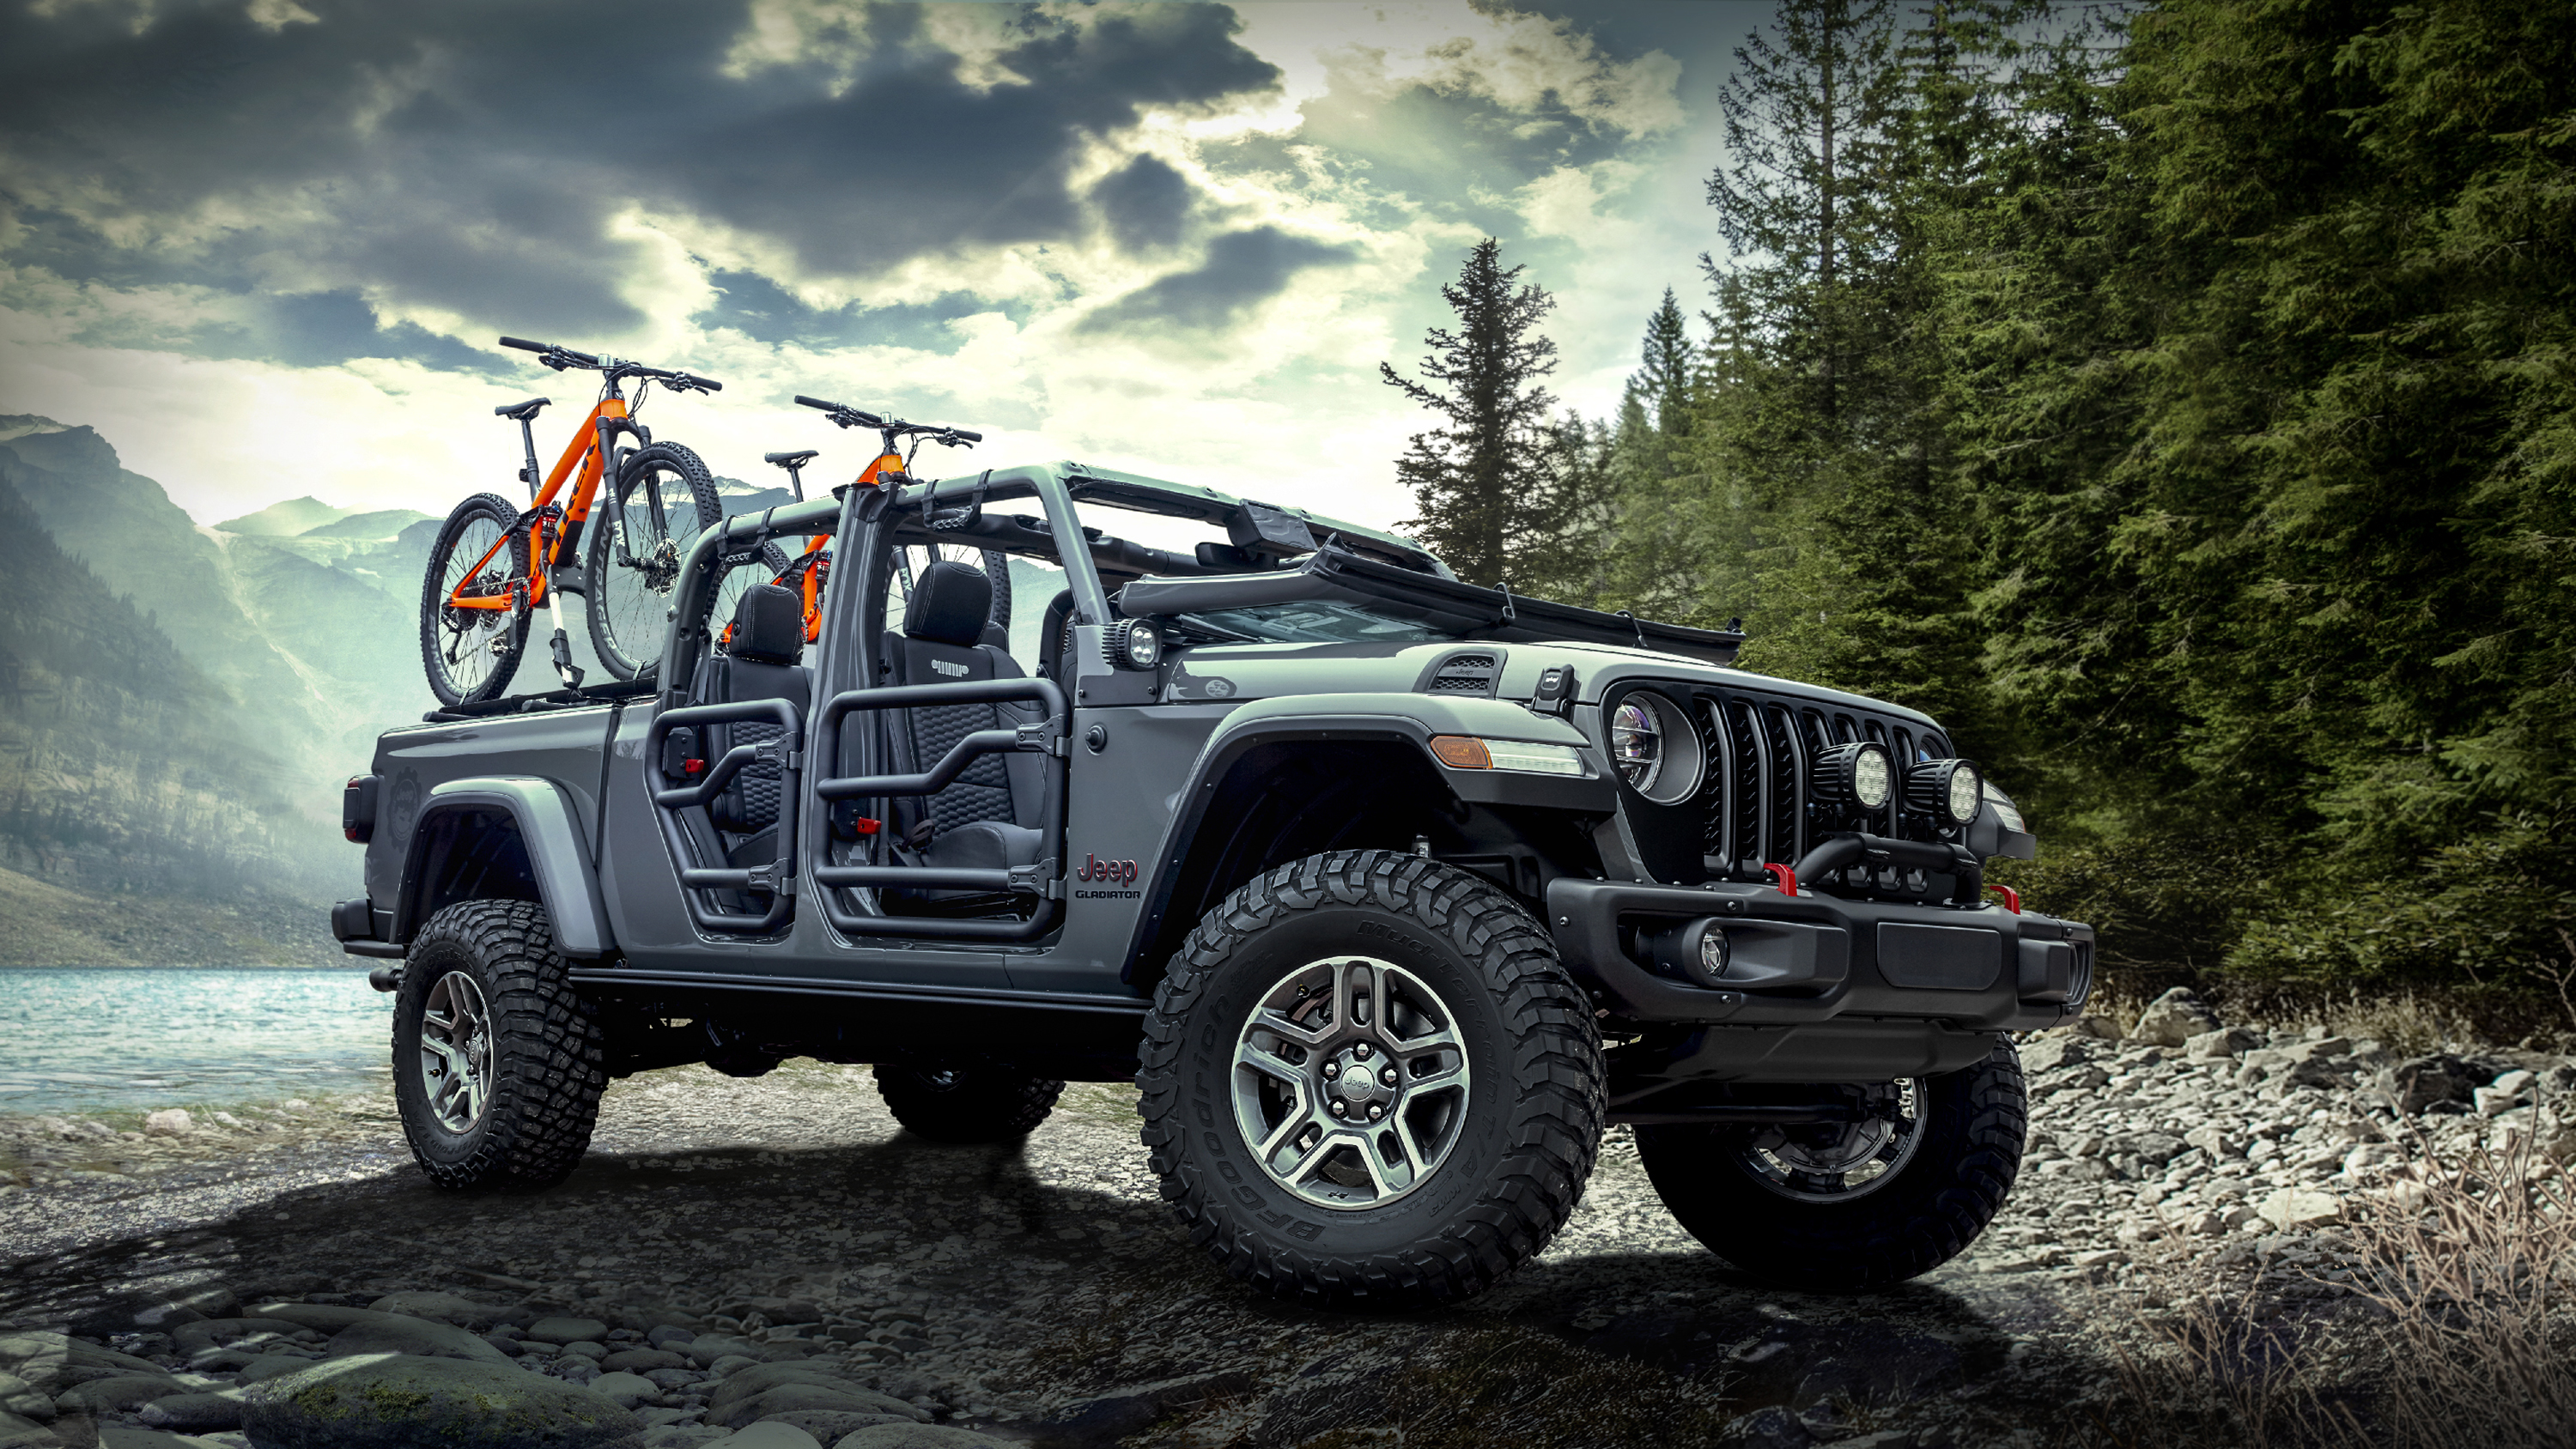 2020 Mopar Jeep Gladiator Rubicon Wallpaper HD Car Wallpapers 3000x1688